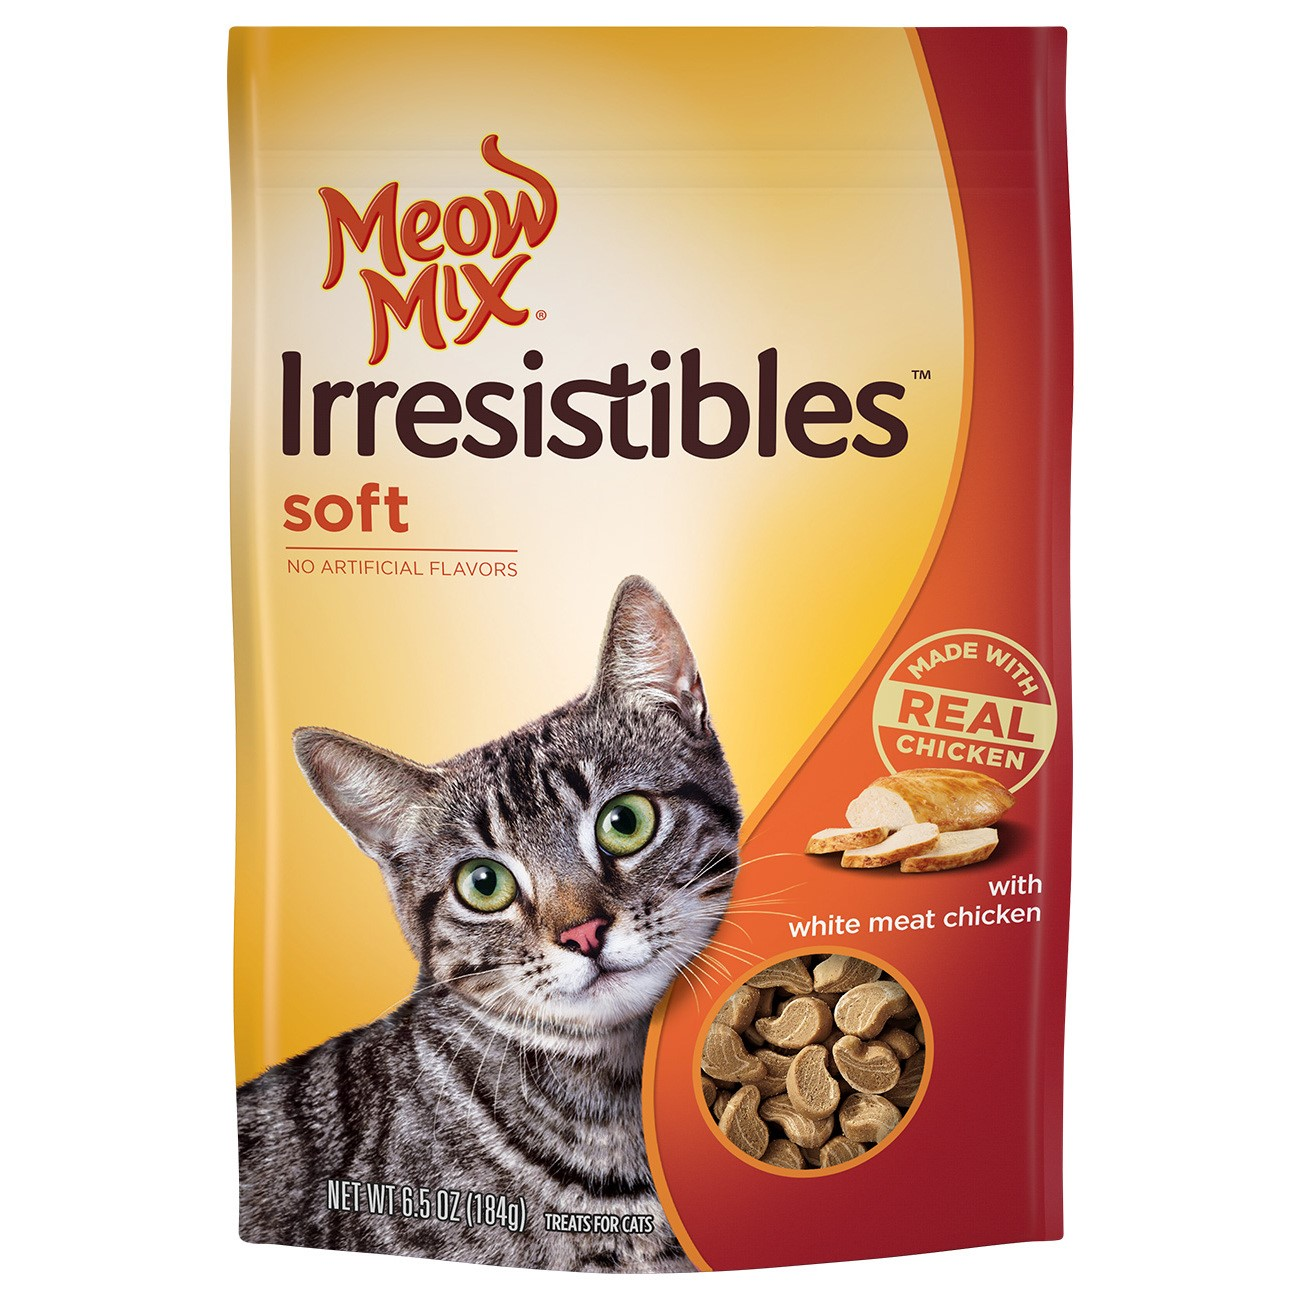 Meow Mix Irresistibles Cat Treats - Soft With White Meat Chicken, 6.5-Ounce Bag